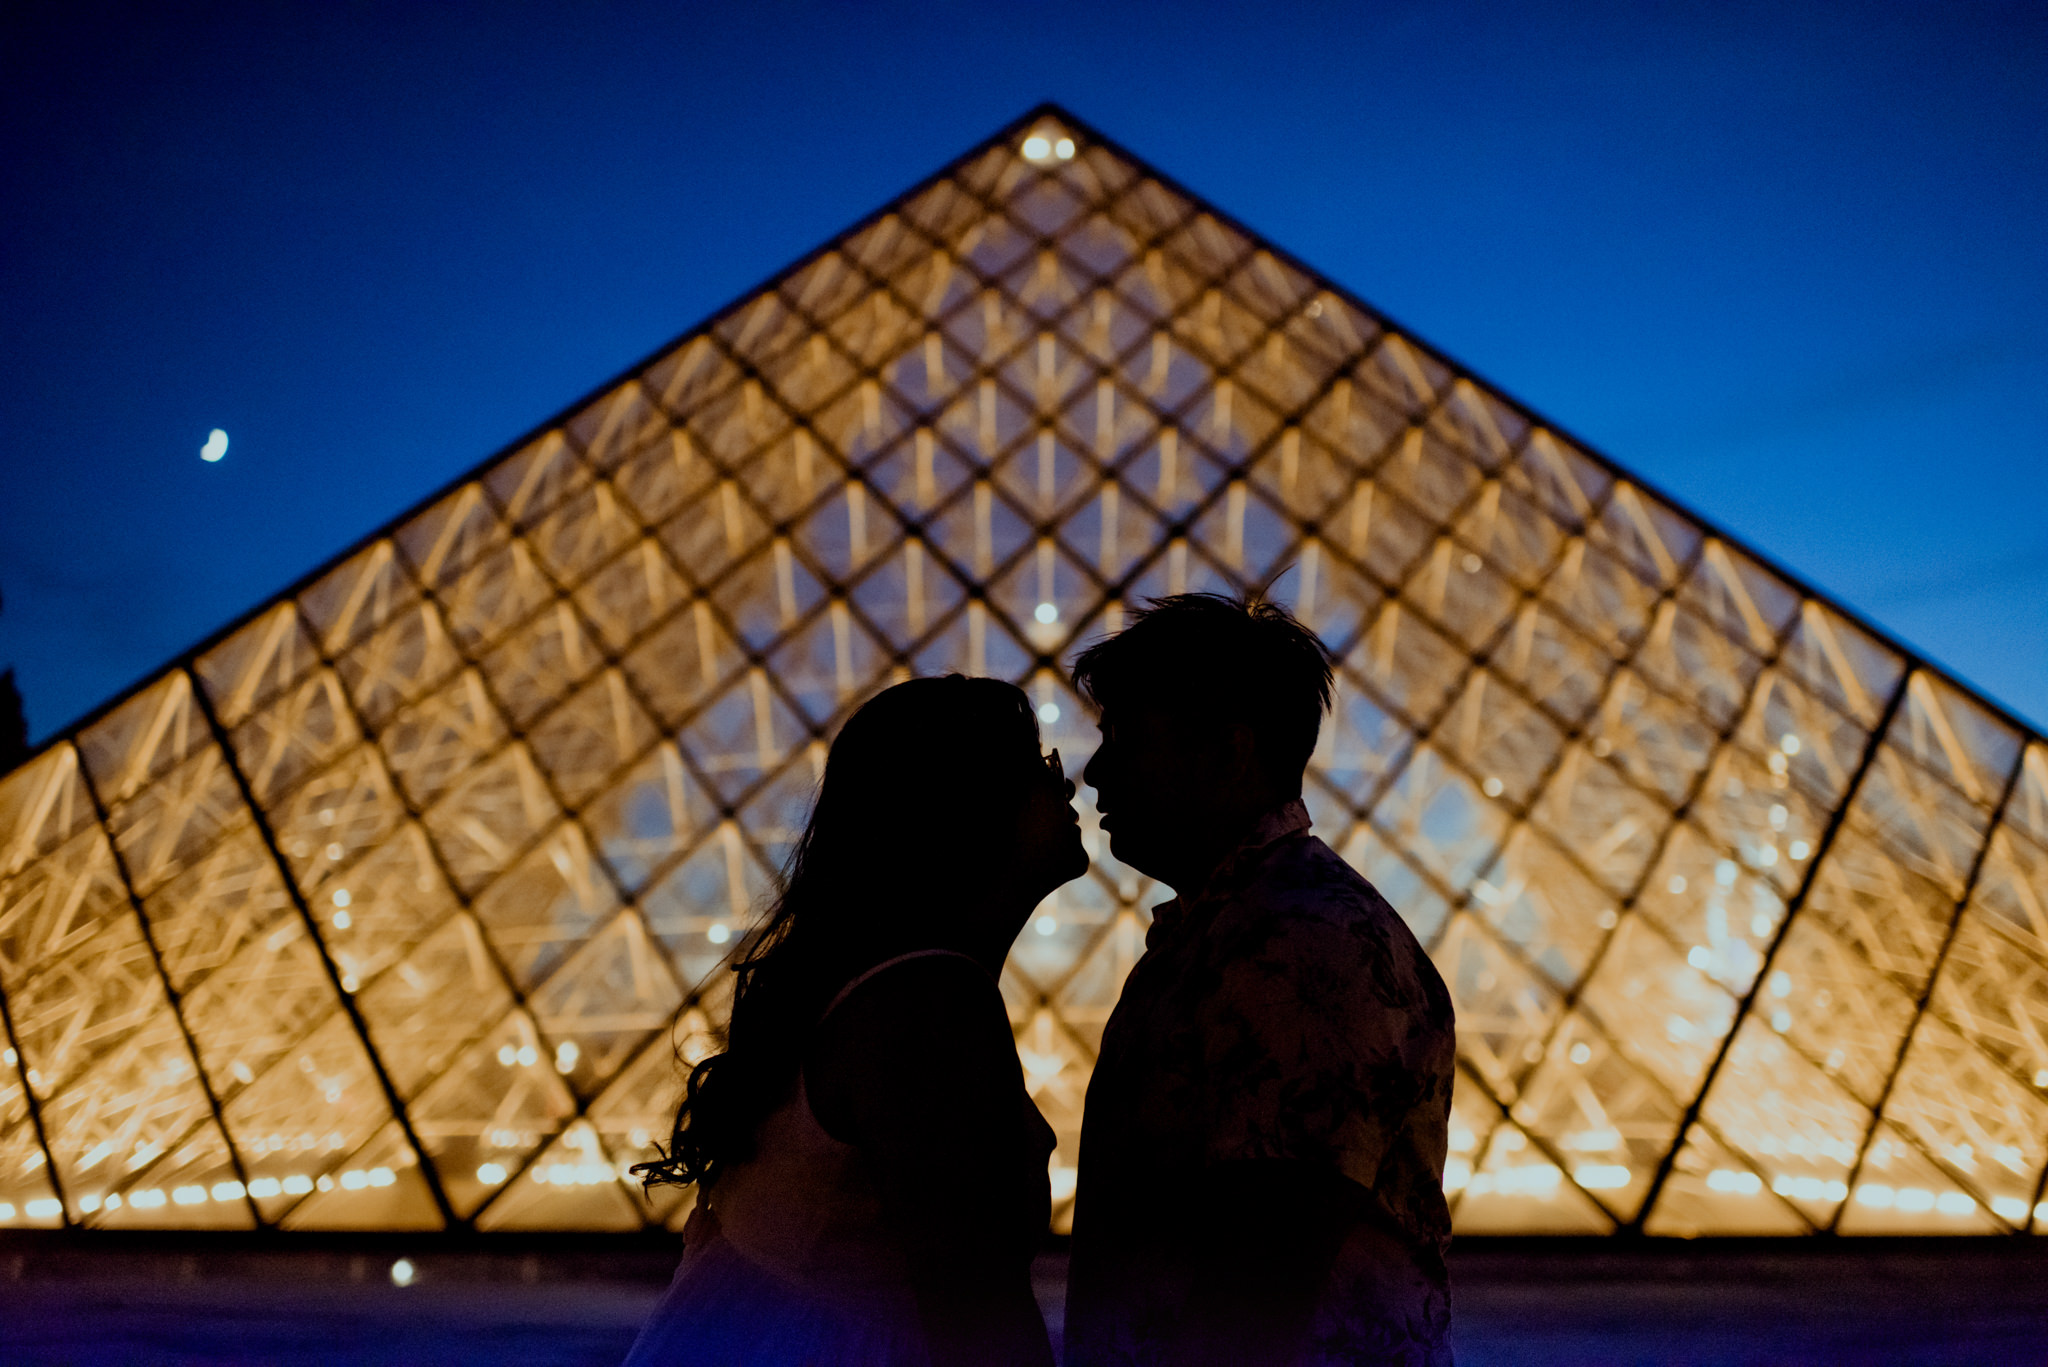 Silhouette of a man and a woman facing each other in front of the Louvre Pyramids.